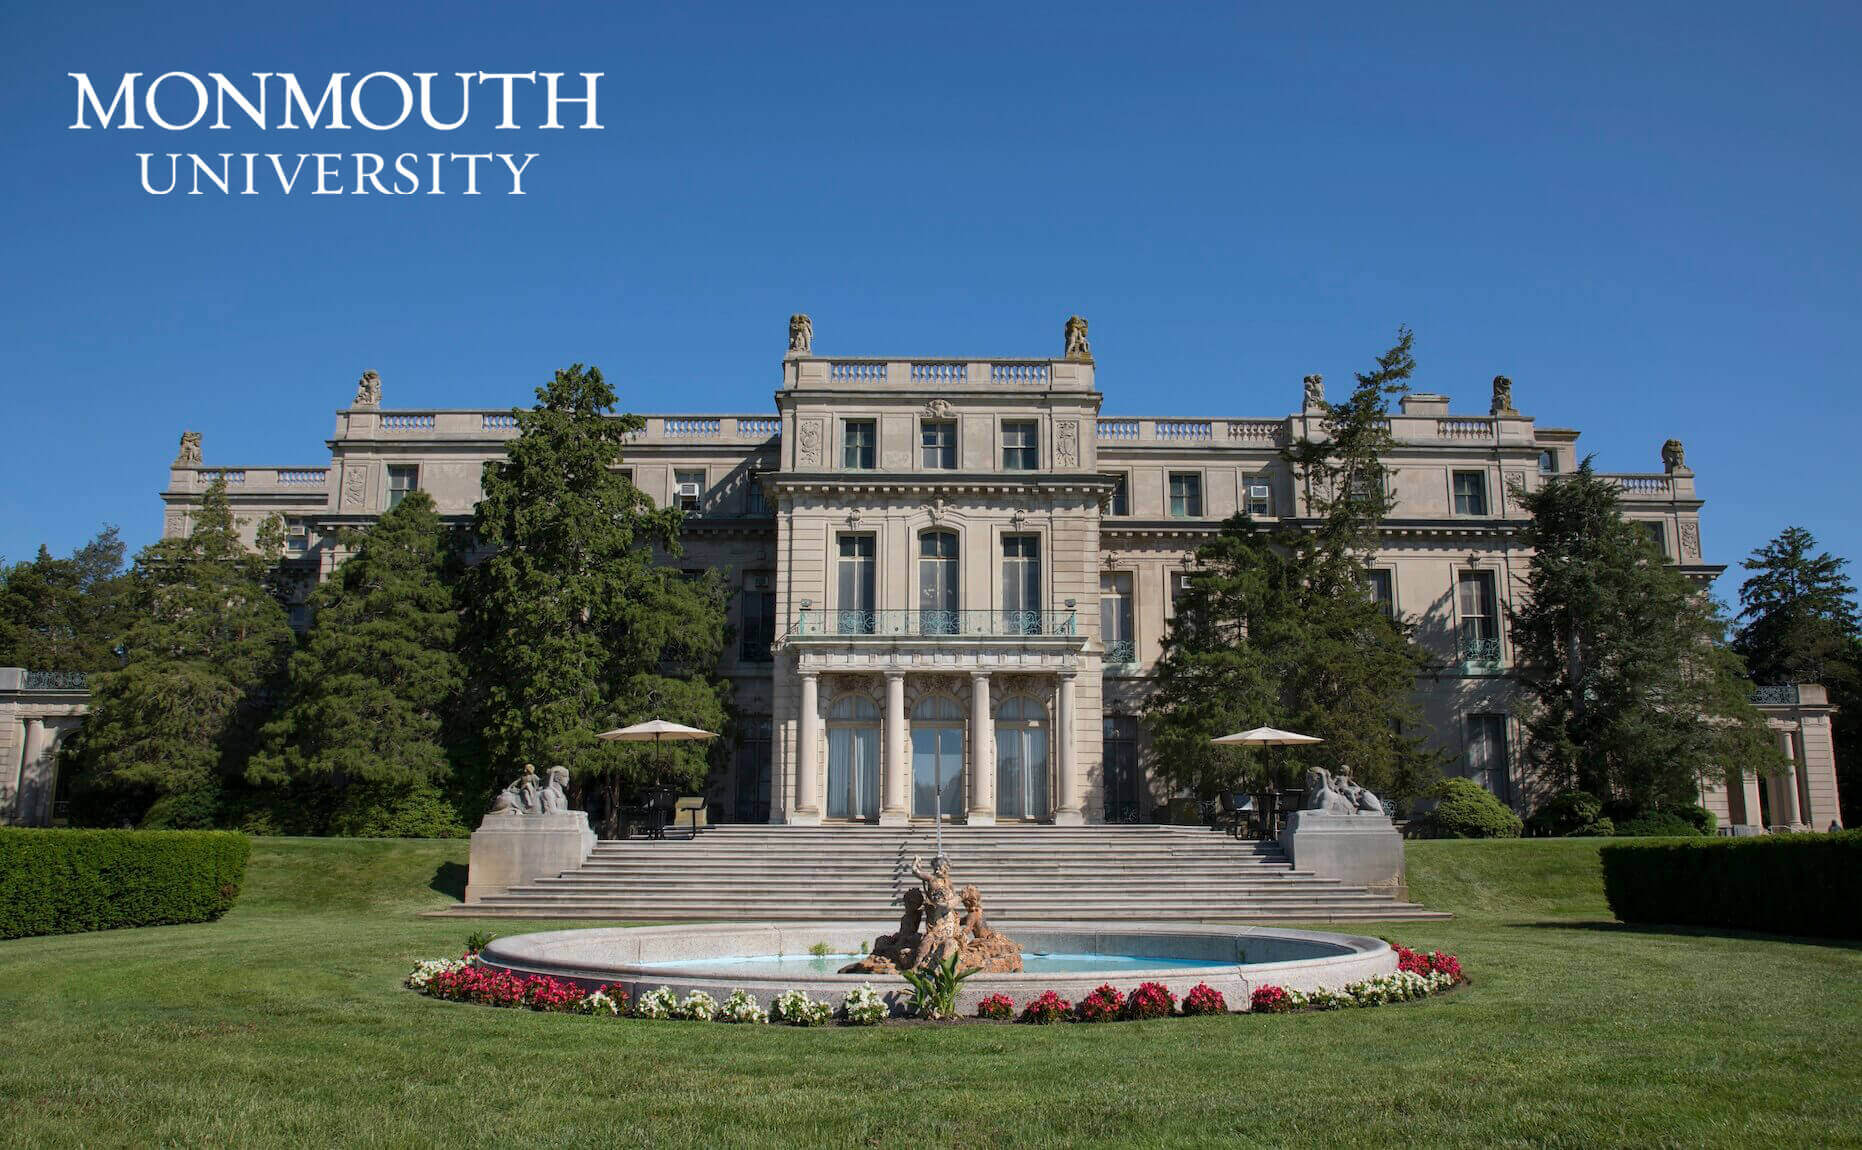 The Great Hall, a National Historic Landmark located right on Monmouth University's campus